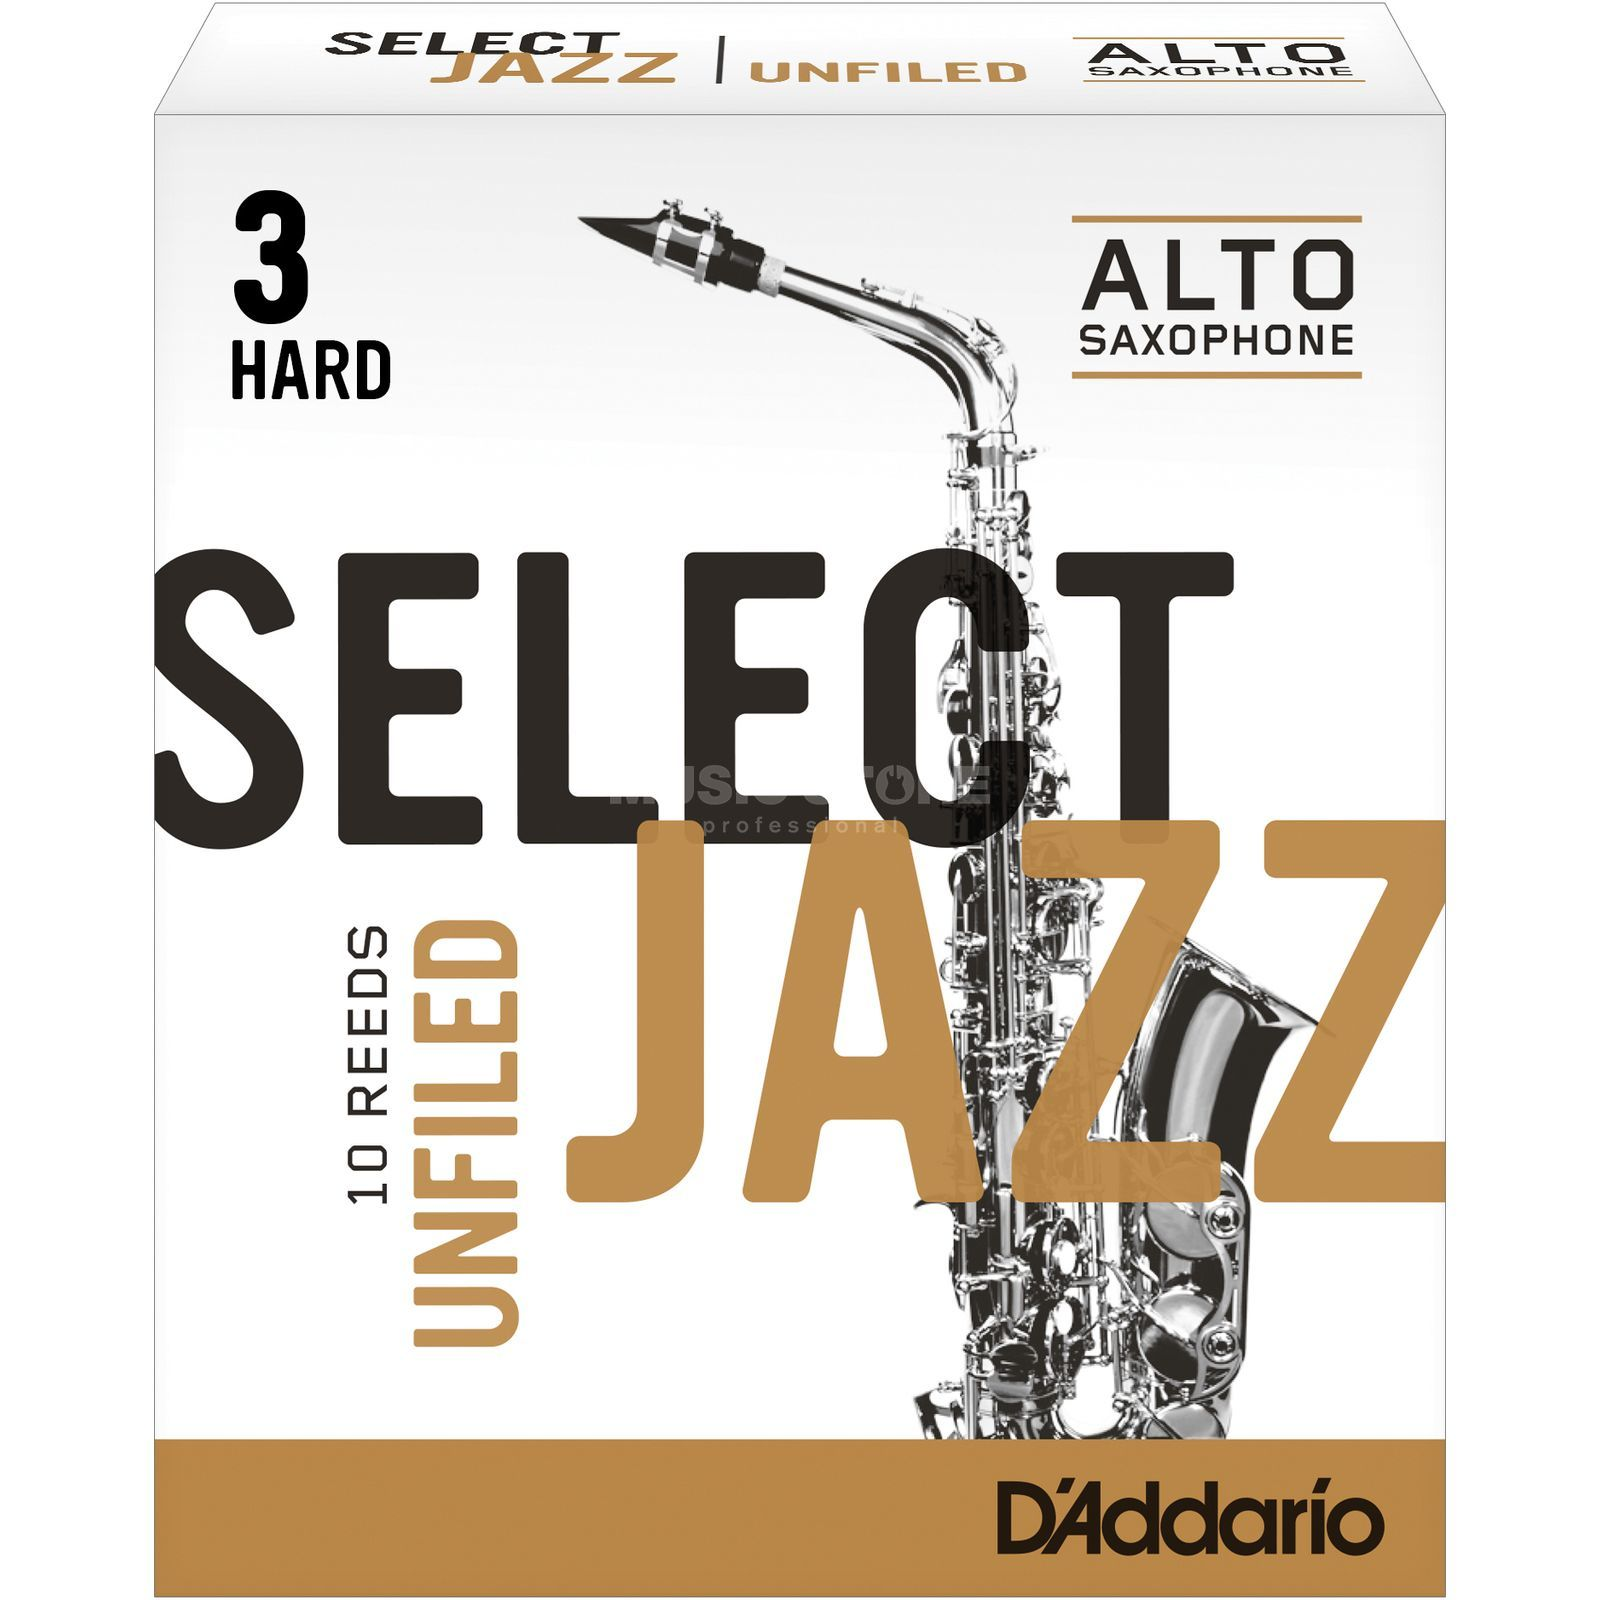 D'Addario Woodwinds Alto Sax Reeds 3H Unfiled Box of 10 Zdjęcie produktu